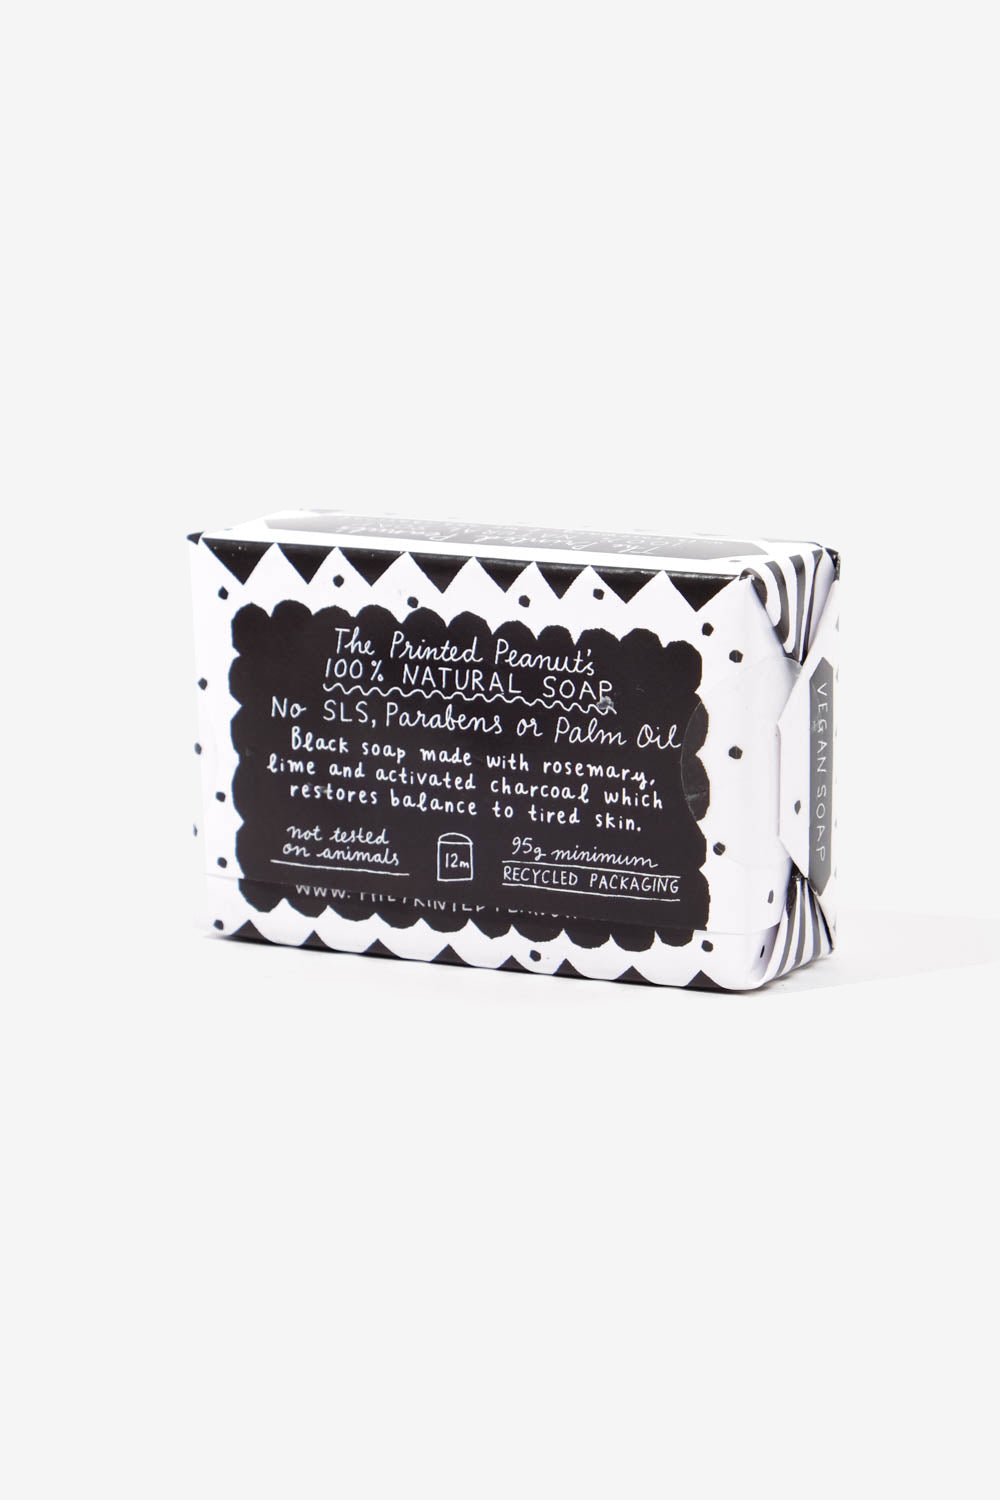 Natural Handmade Black Soap Bar, Personal Care, The Printed Peanut LTD - Six and Sons